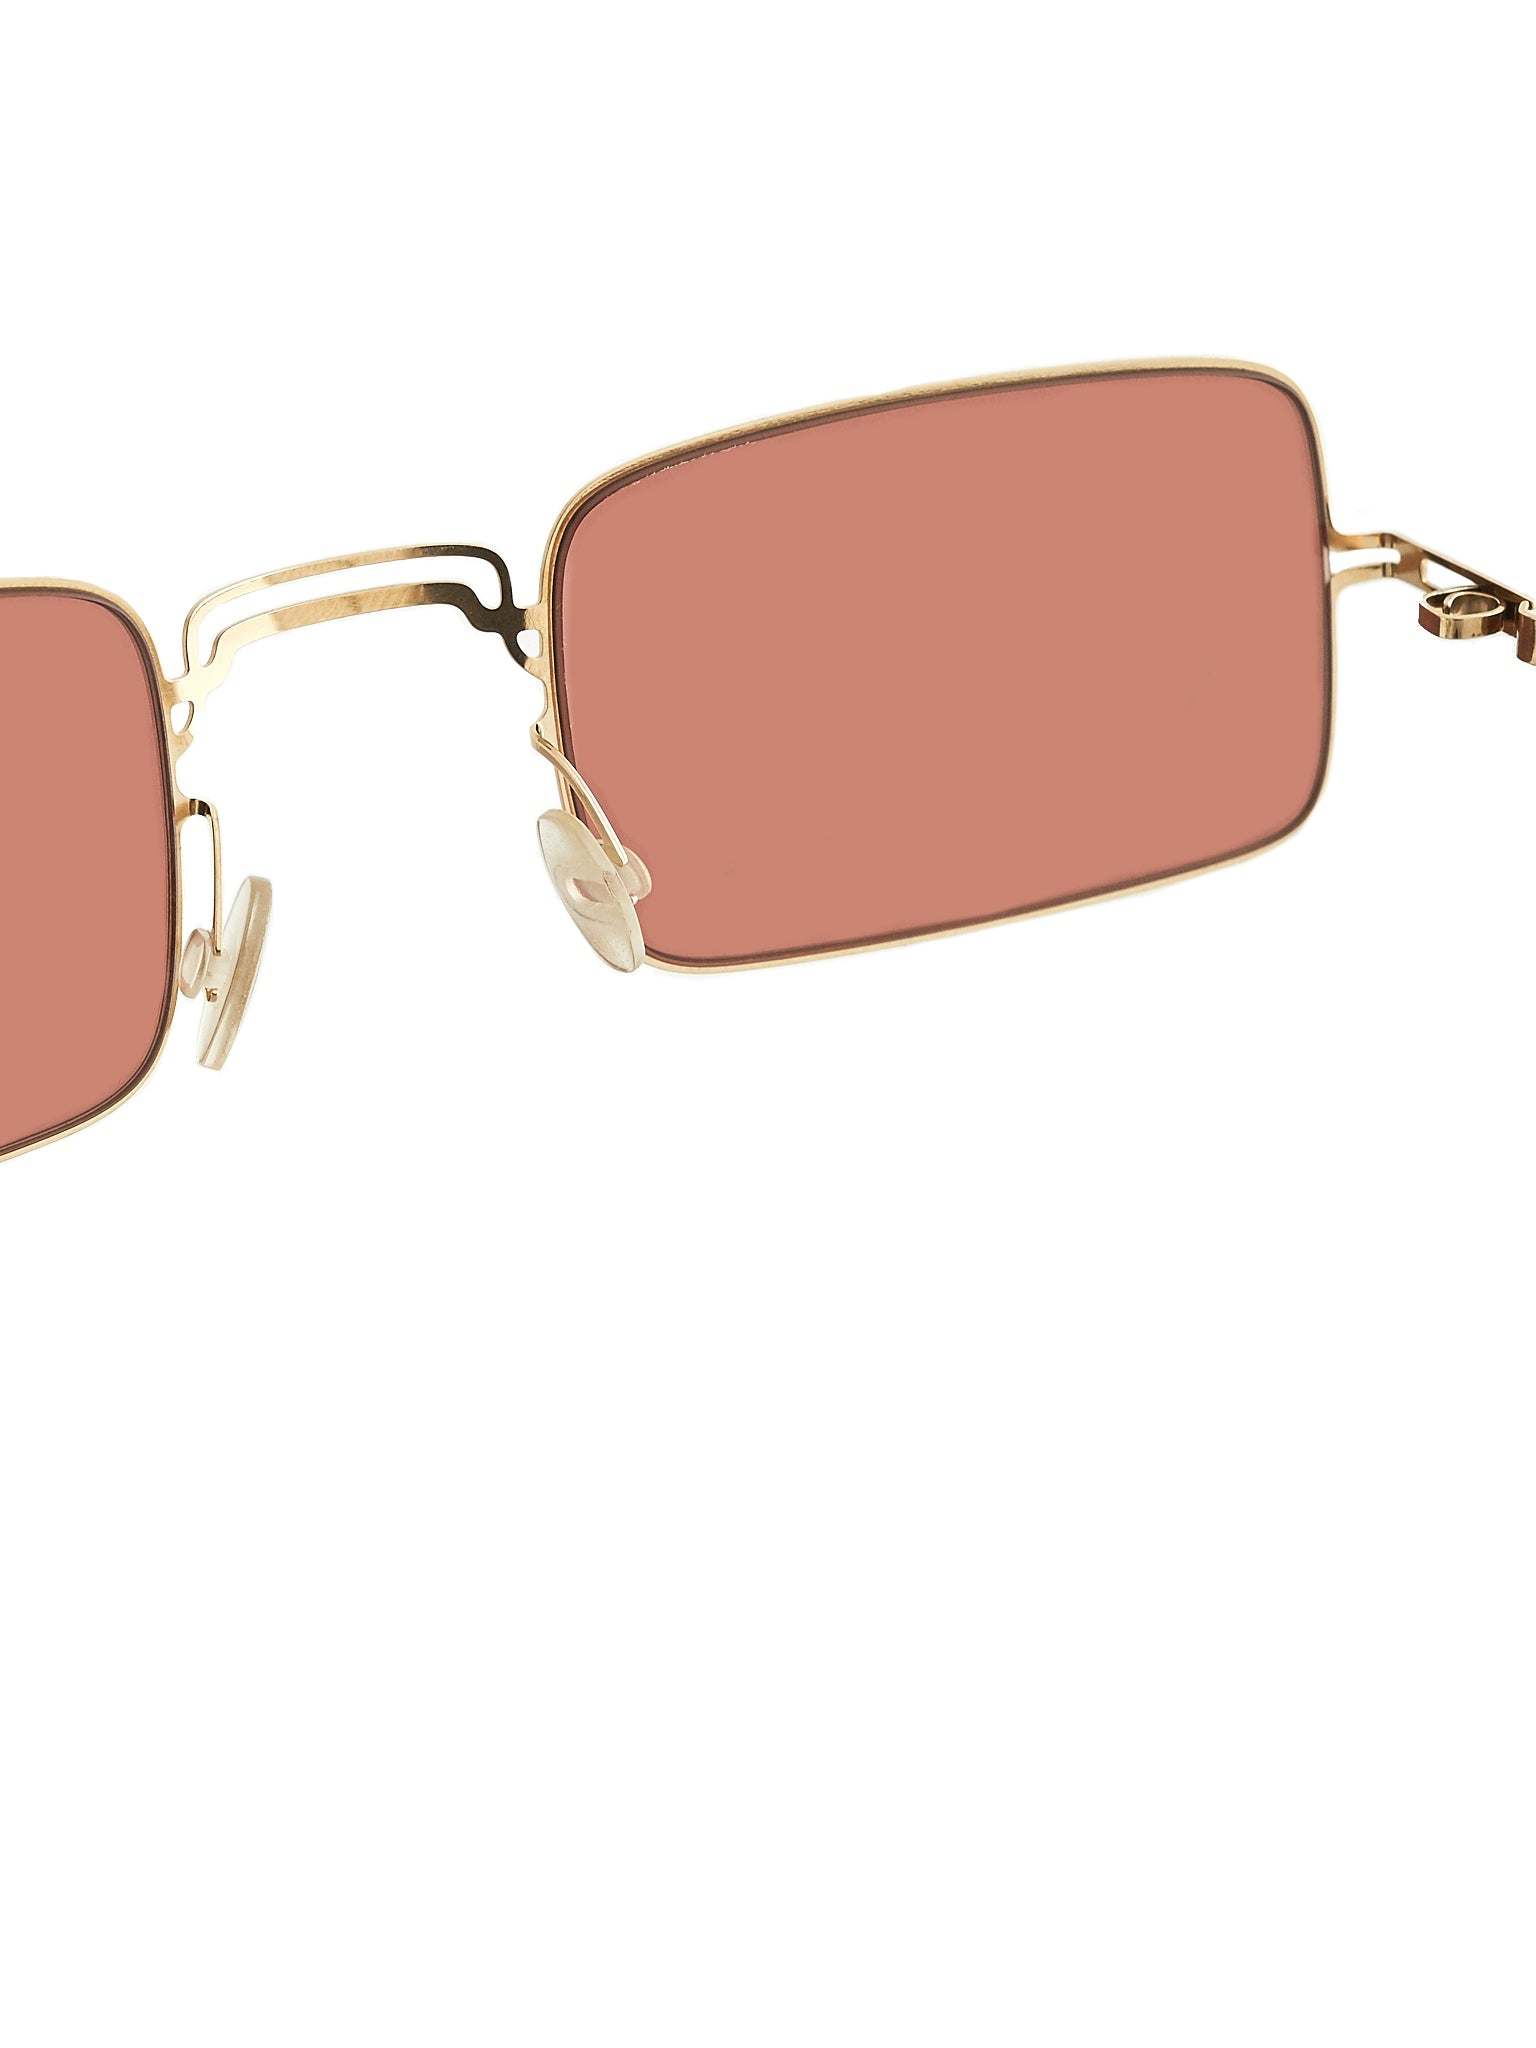 'MMCRAFT003' Square Frame Sunglasses (MMCRAFT003-CHAMPAGNEGOLD-PURPL)